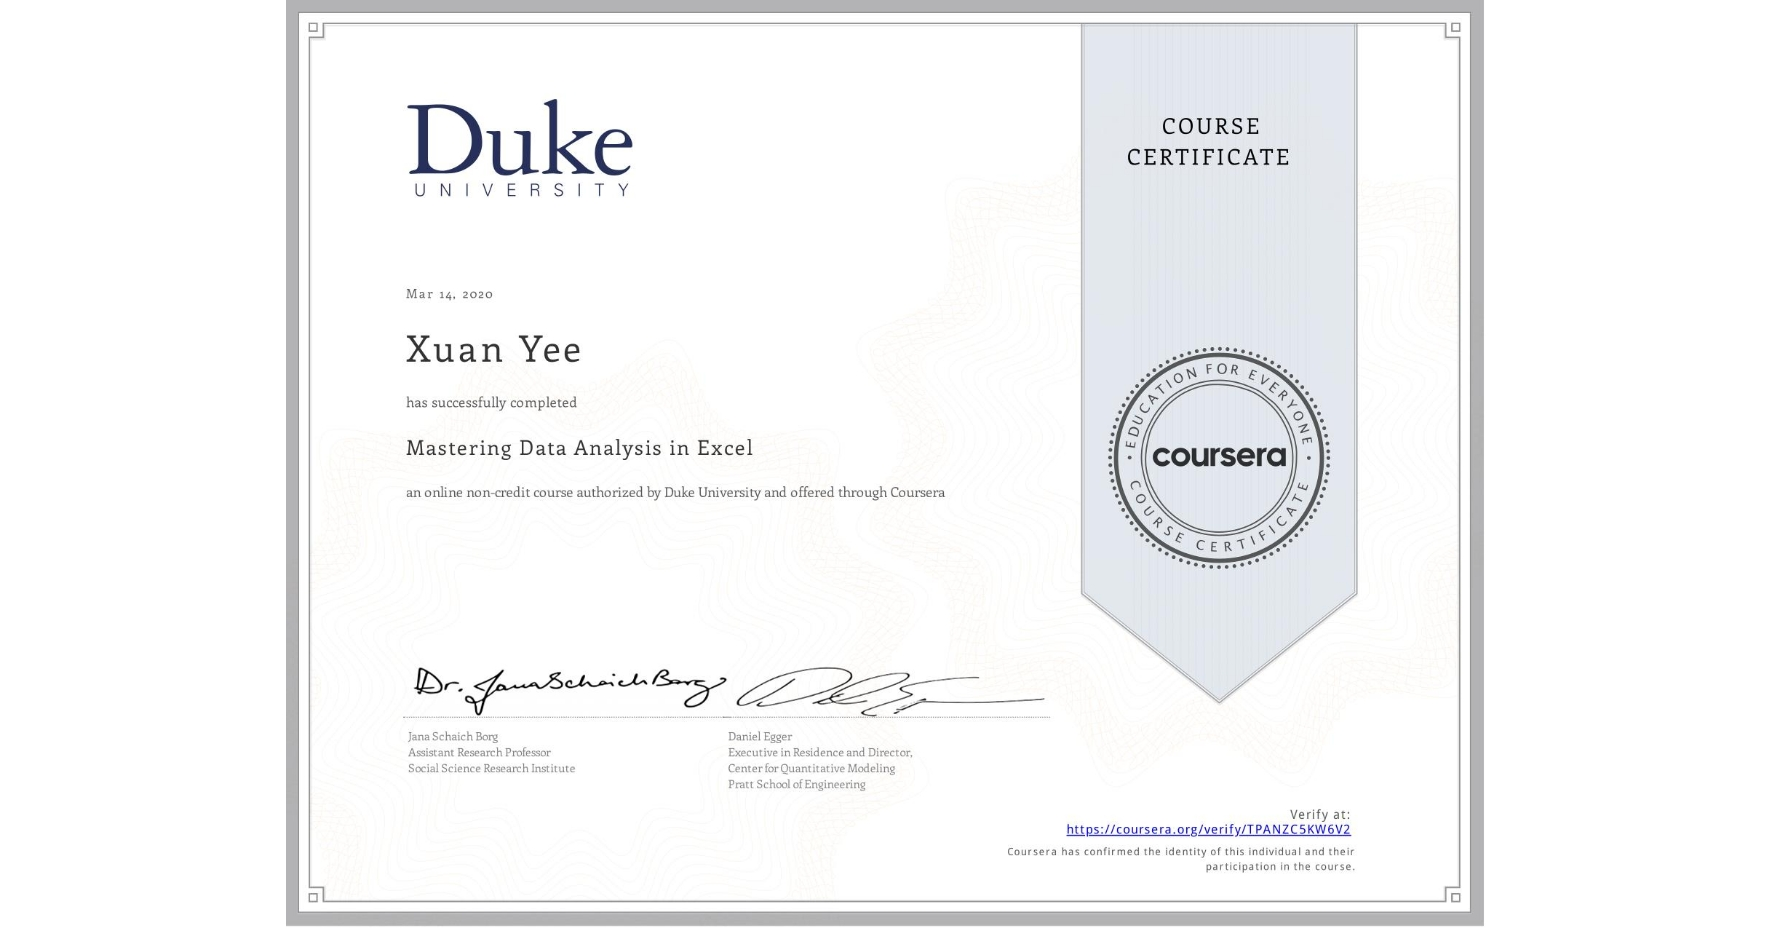 View certificate for Xuan Yee, Mastering Data Analysis in Excel, an online non-credit course authorized by Duke University and offered through Coursera